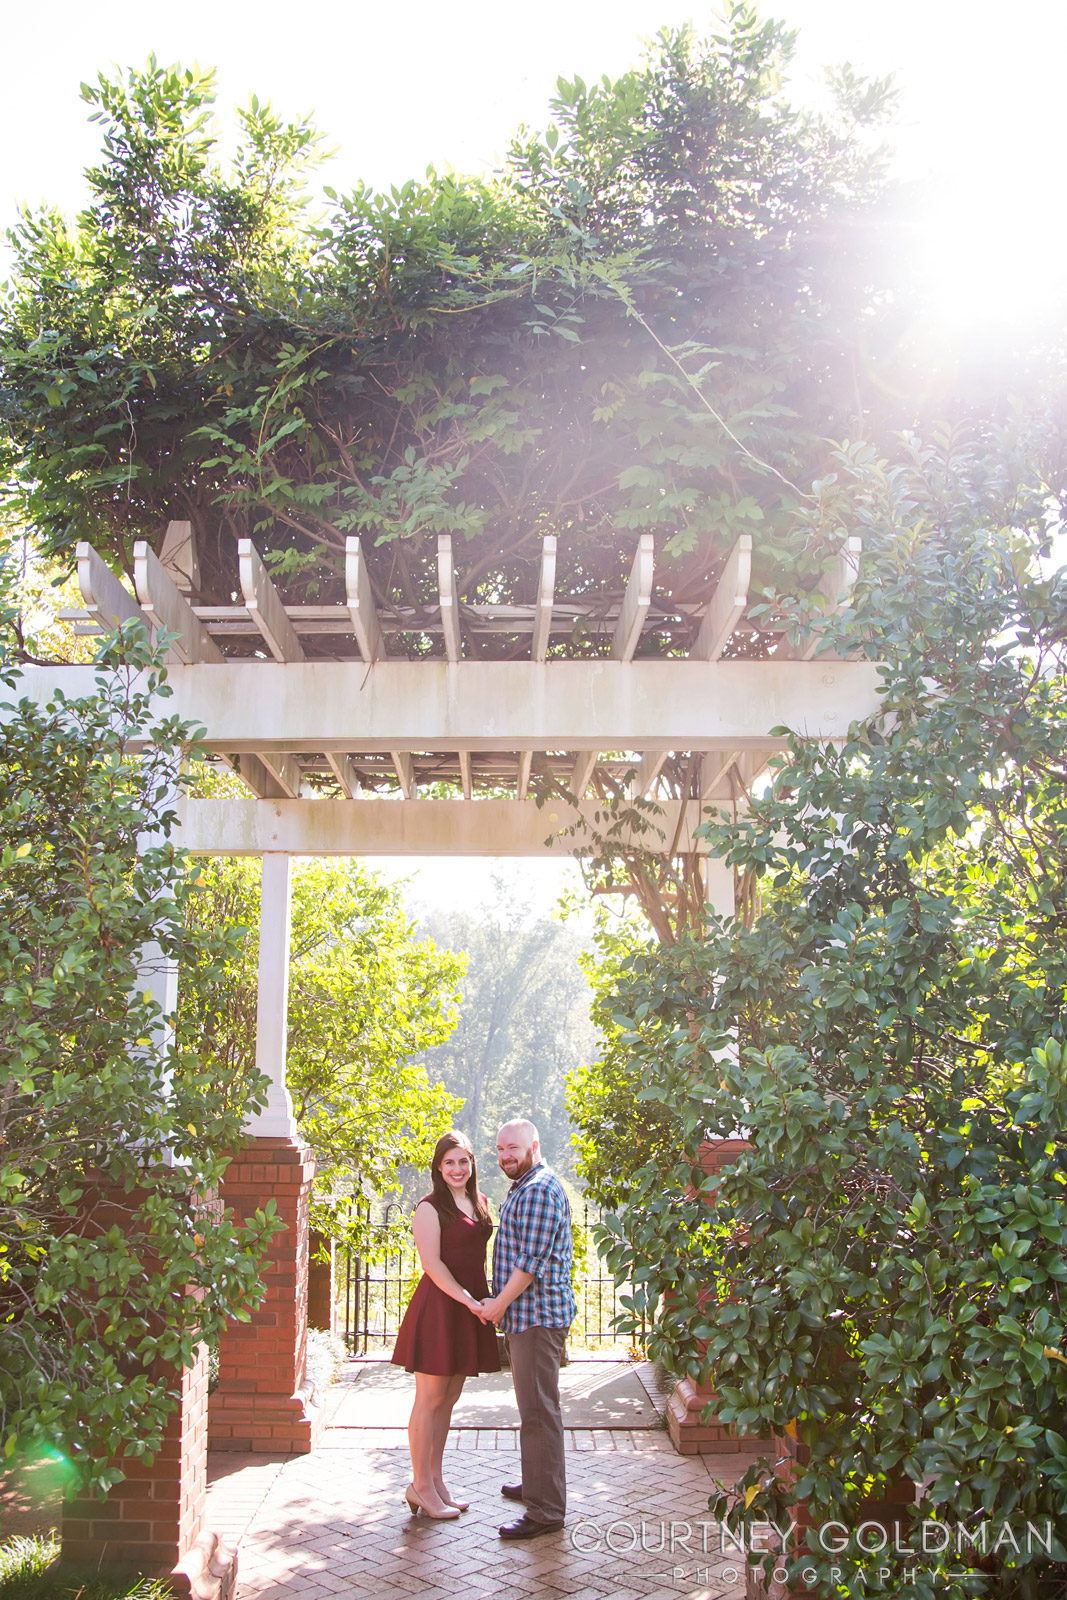 Atlanta-Couples-Engagement-Proposal-Photography-by-Courtney-Goldman-45.jpg